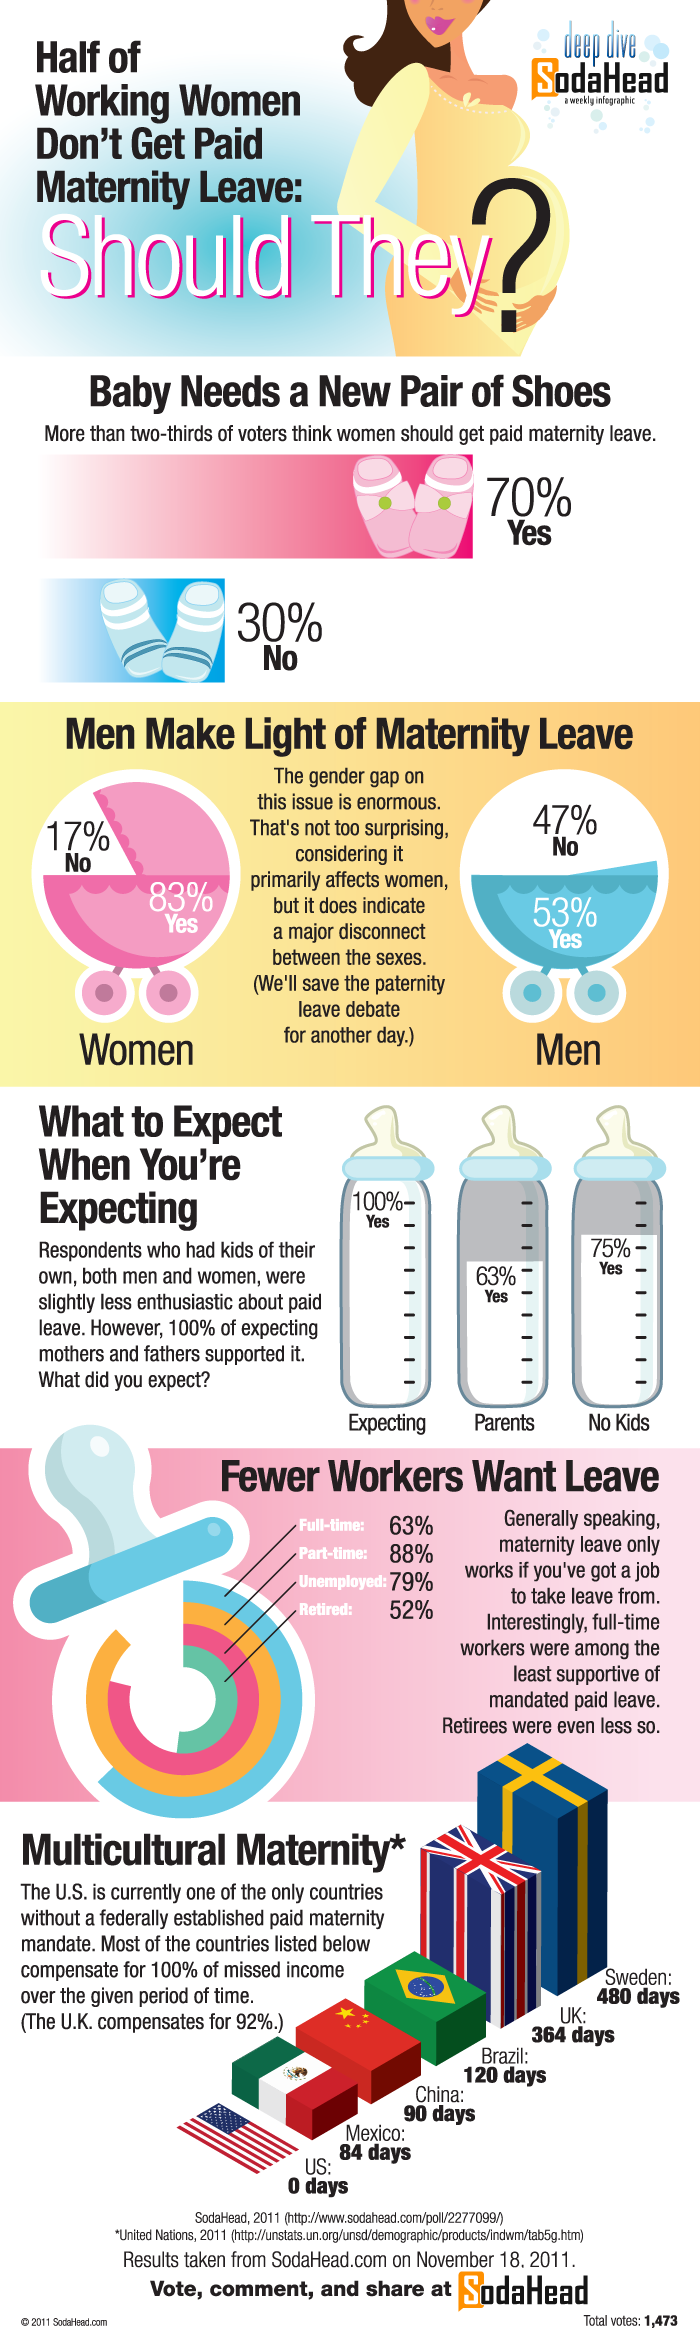 Half of Working Women Don't Get Paid Maternity Leave ...